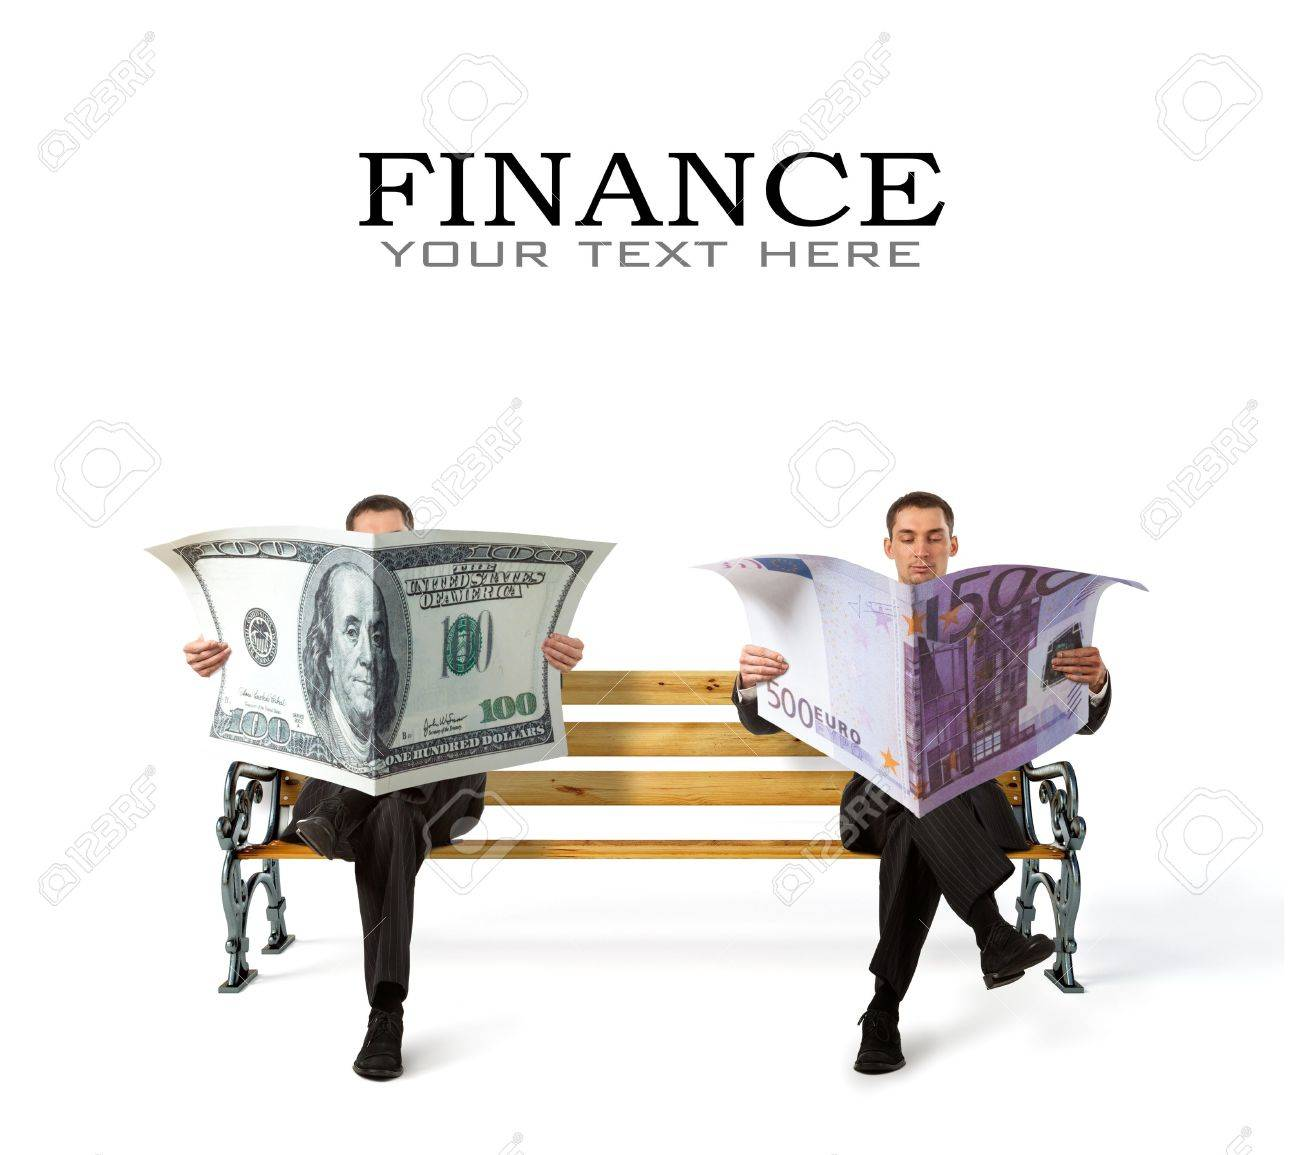 Business People sitting on a bench with currency in hands Stock Photo - 16465267